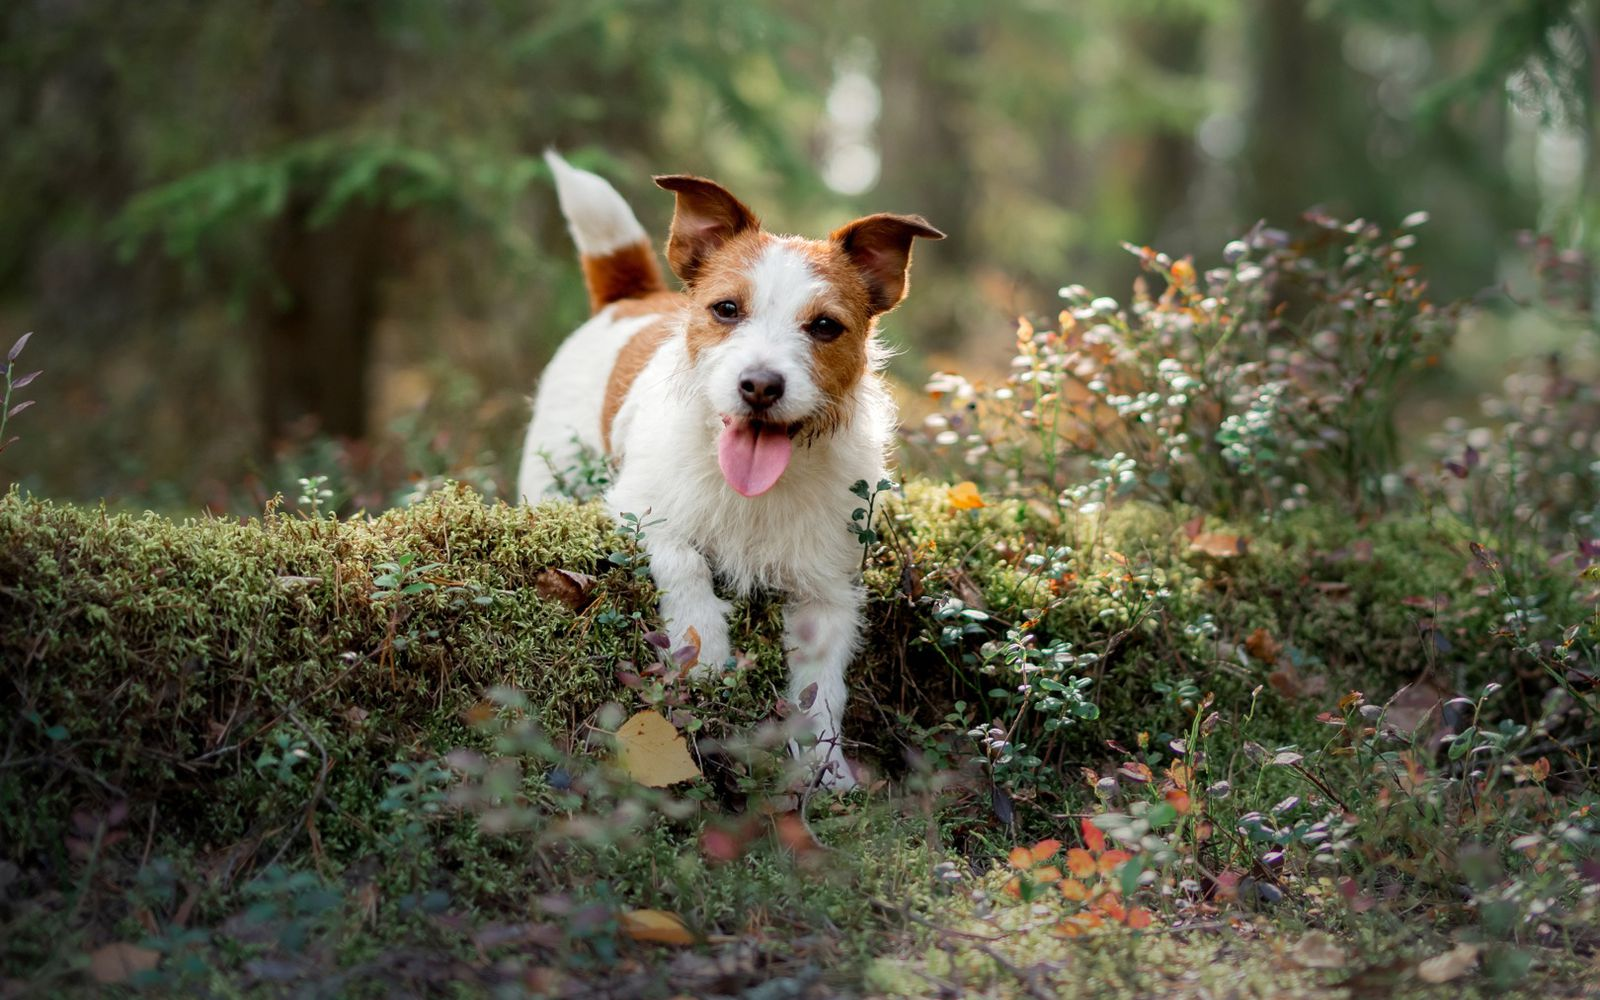 Jack Russell Terrier - Main